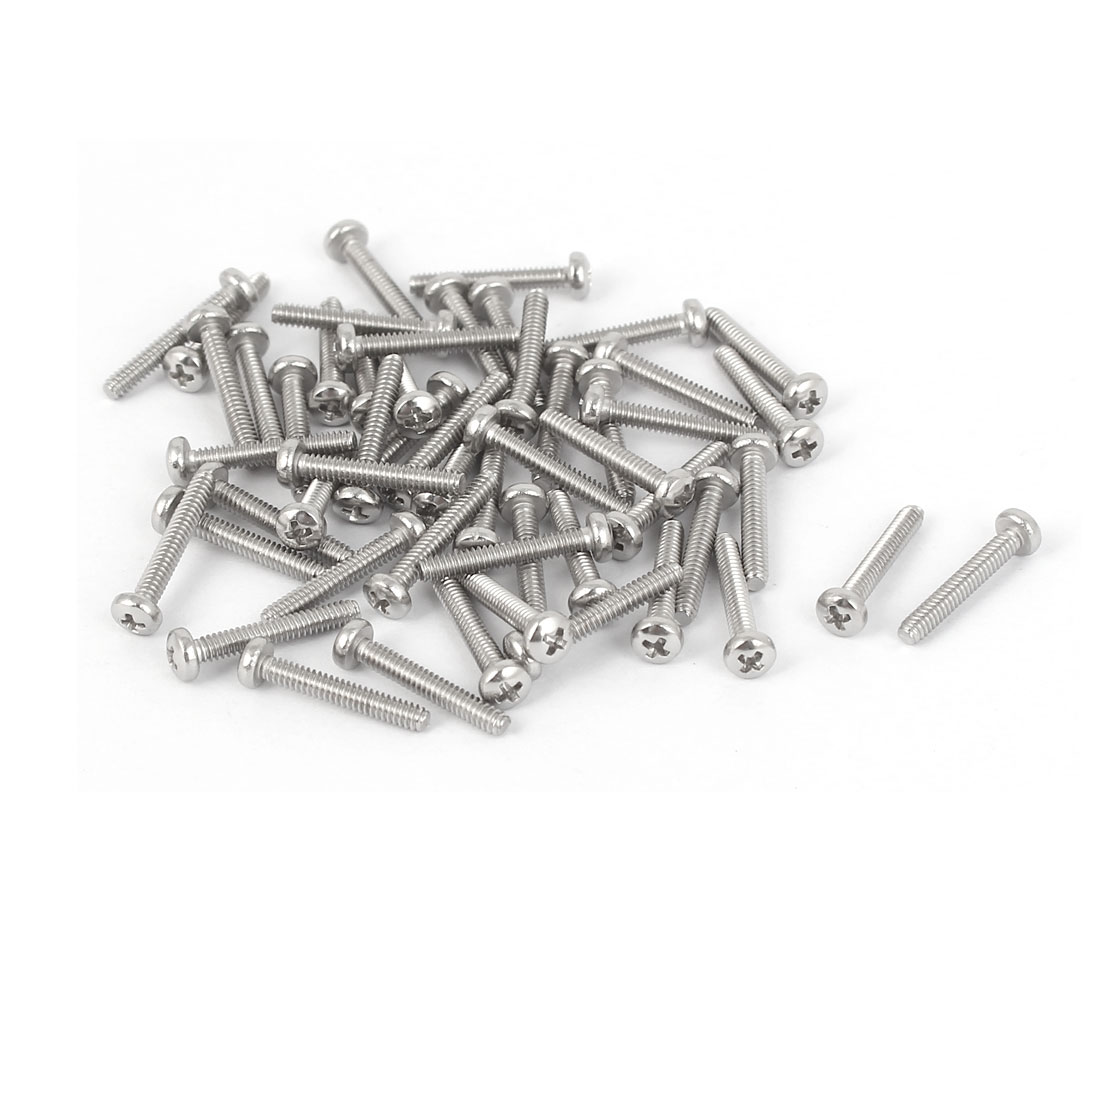 50 Pcs M1.6x10mm 316 Stainless Steel Phillips Pan Head Machine Screws Bolts